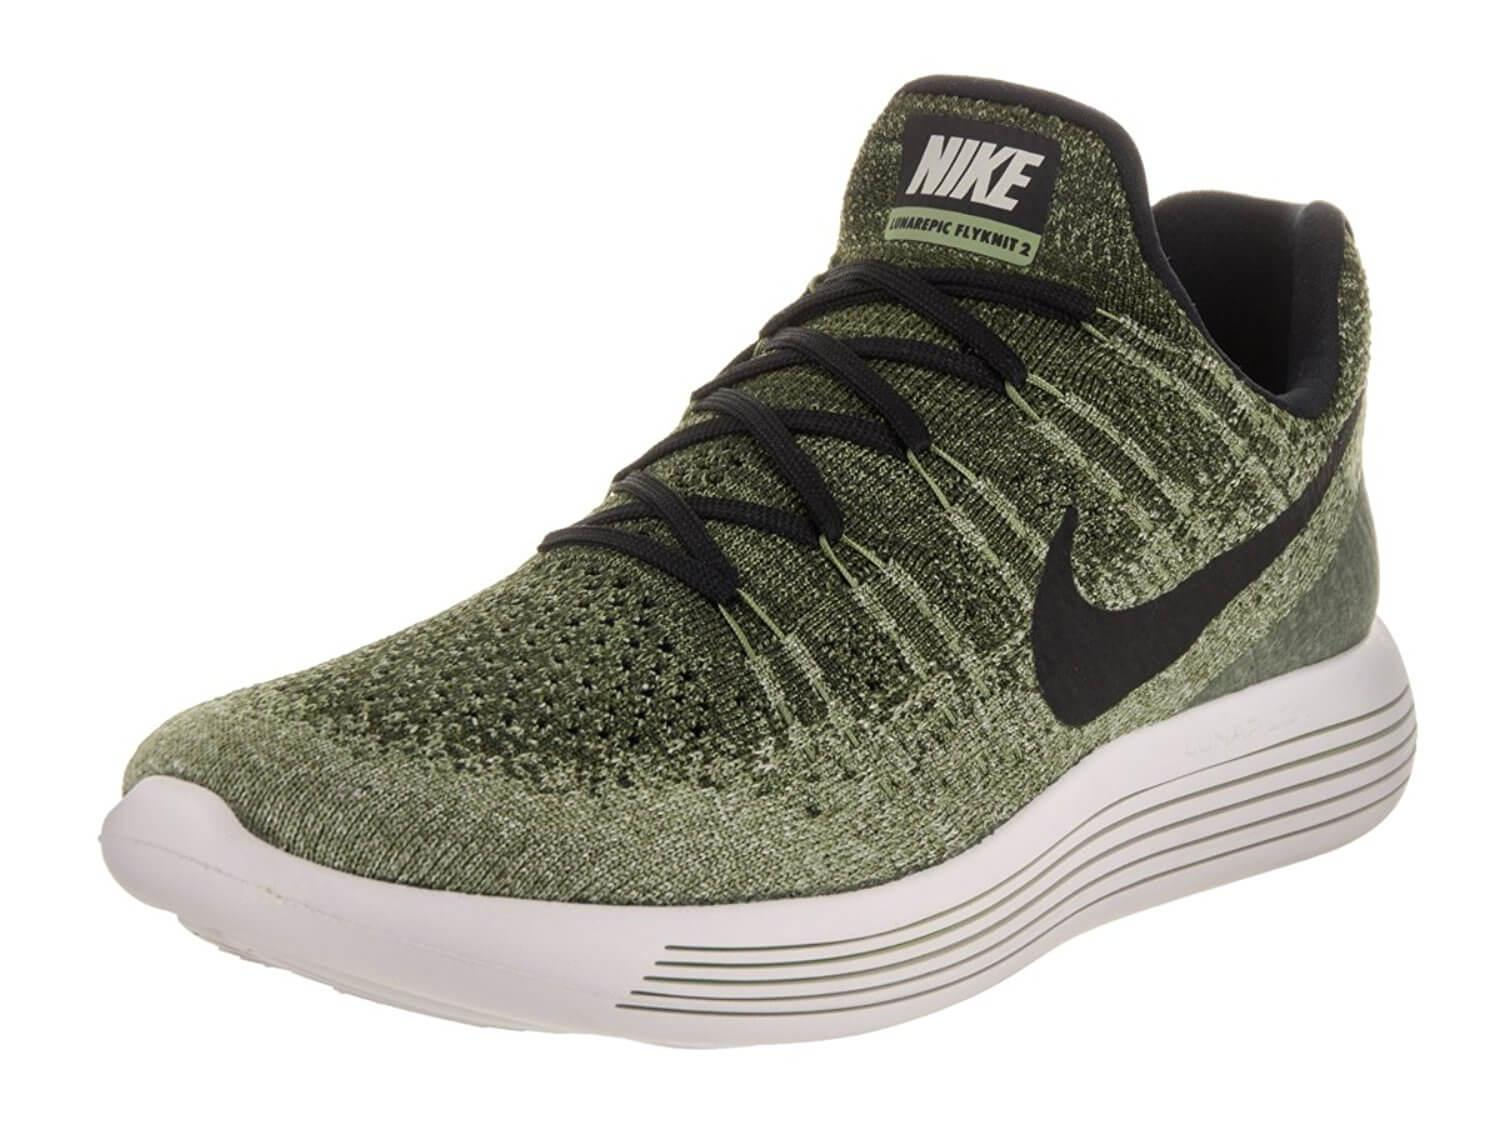 231676cae665 Nike LunarEpic Low Flyknit 2 - Buy or Not in May 2019